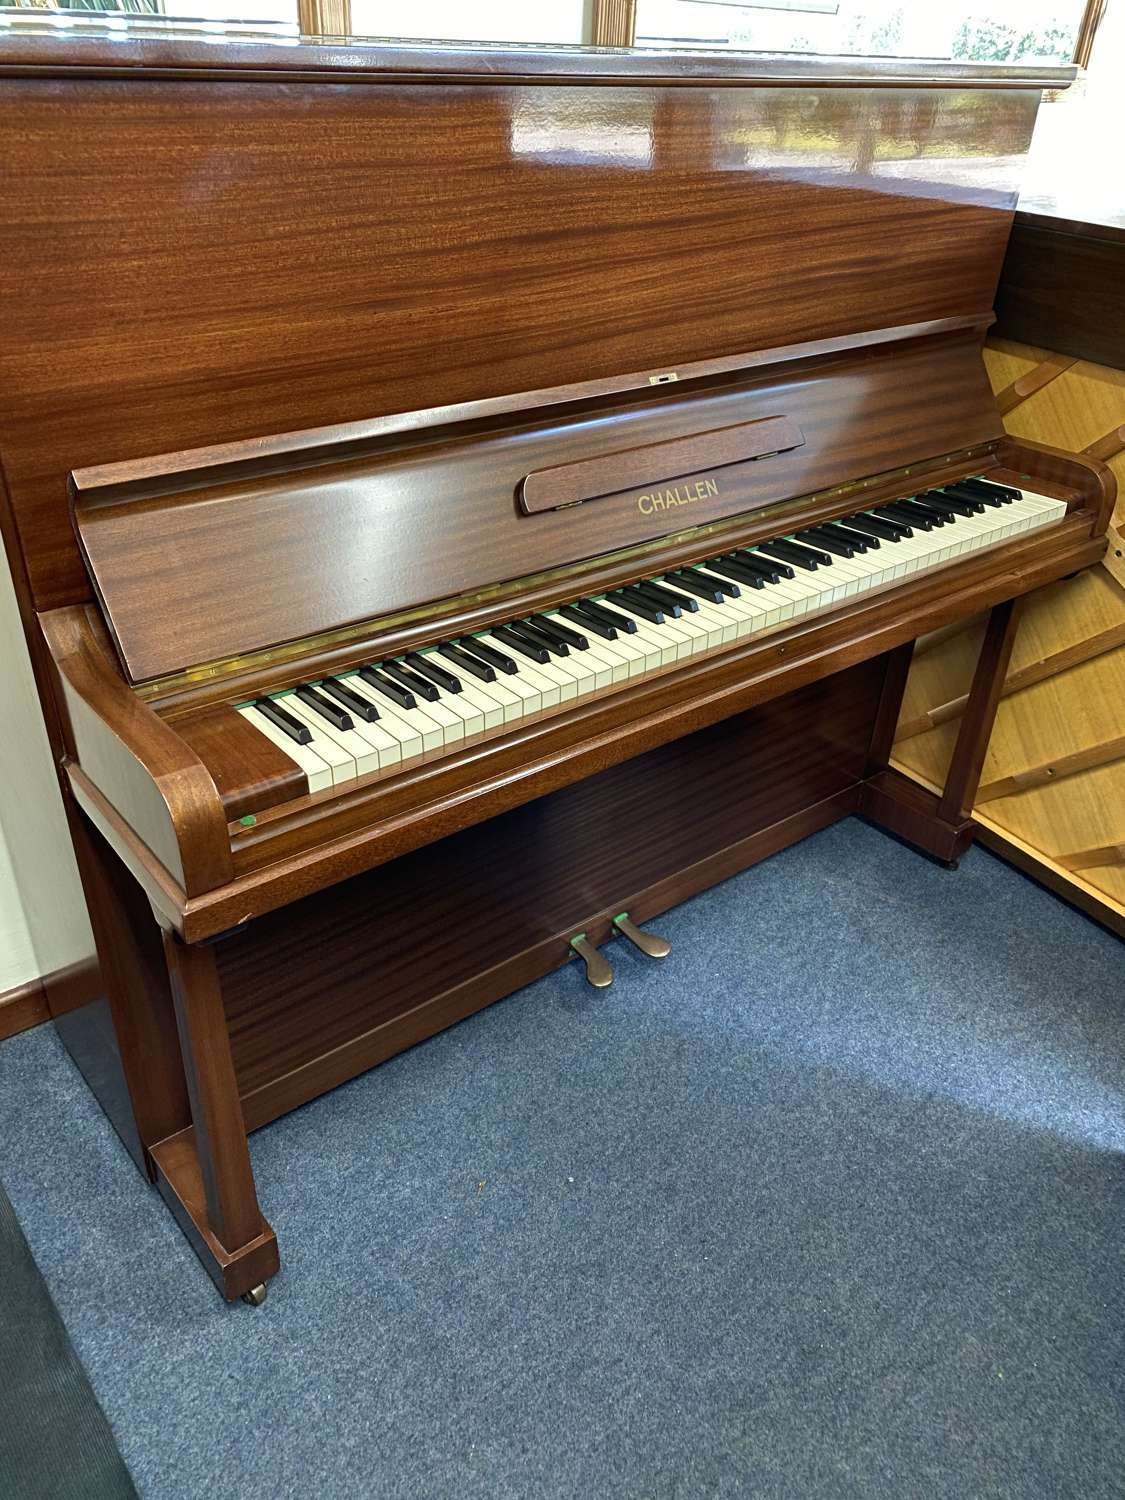 Challen upright piano for sale